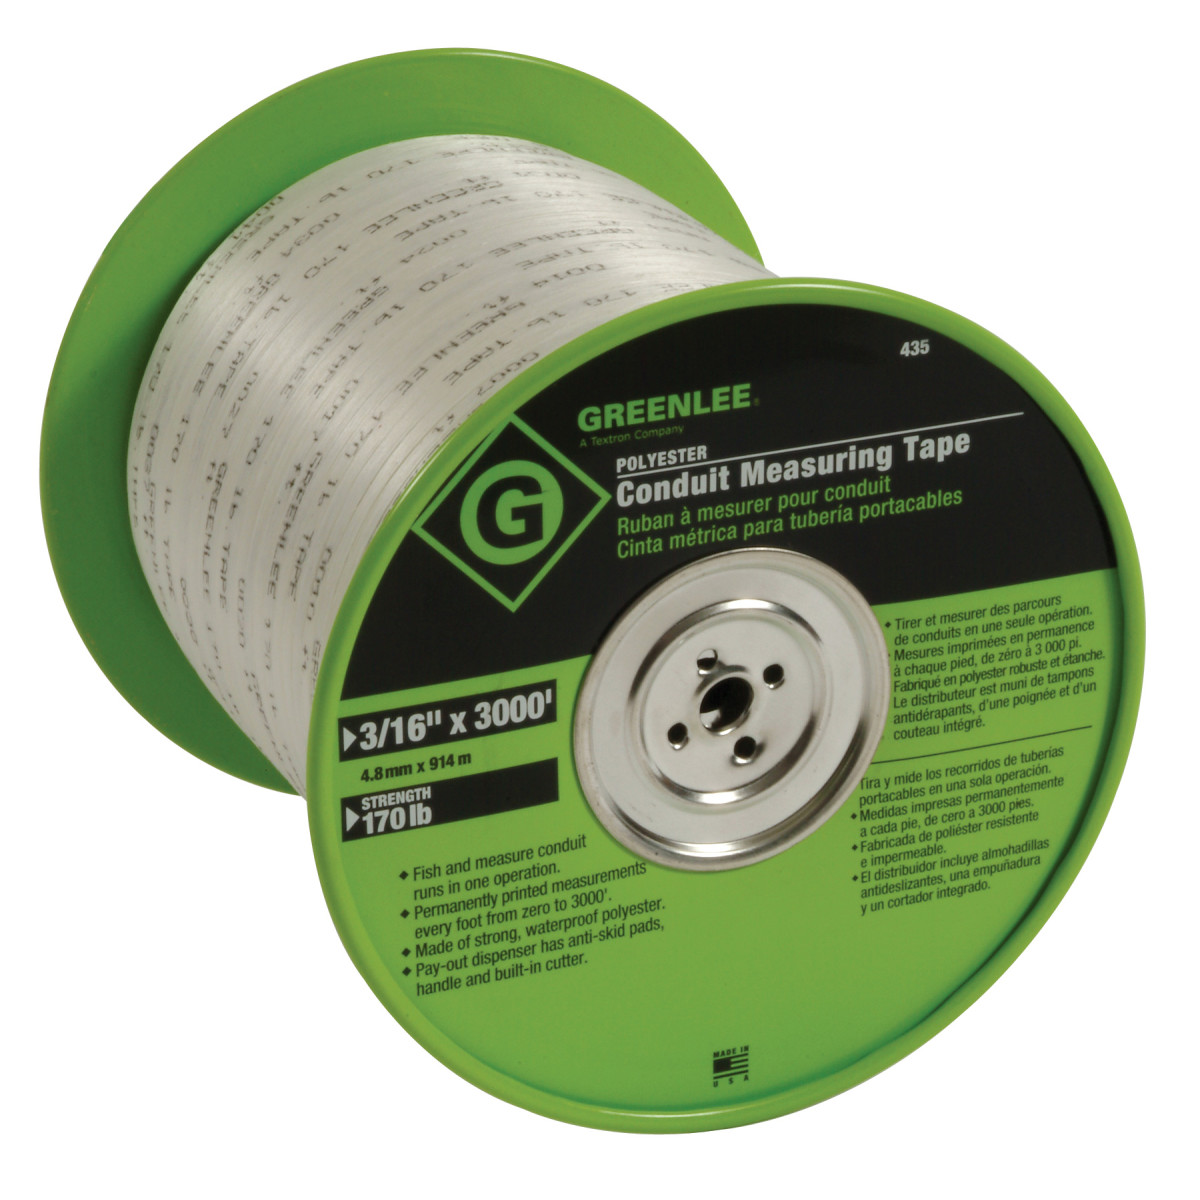 "Greenlee 435 Conduit Measuring Tape, 3/16"" x 2000', Waterproof Polyester"